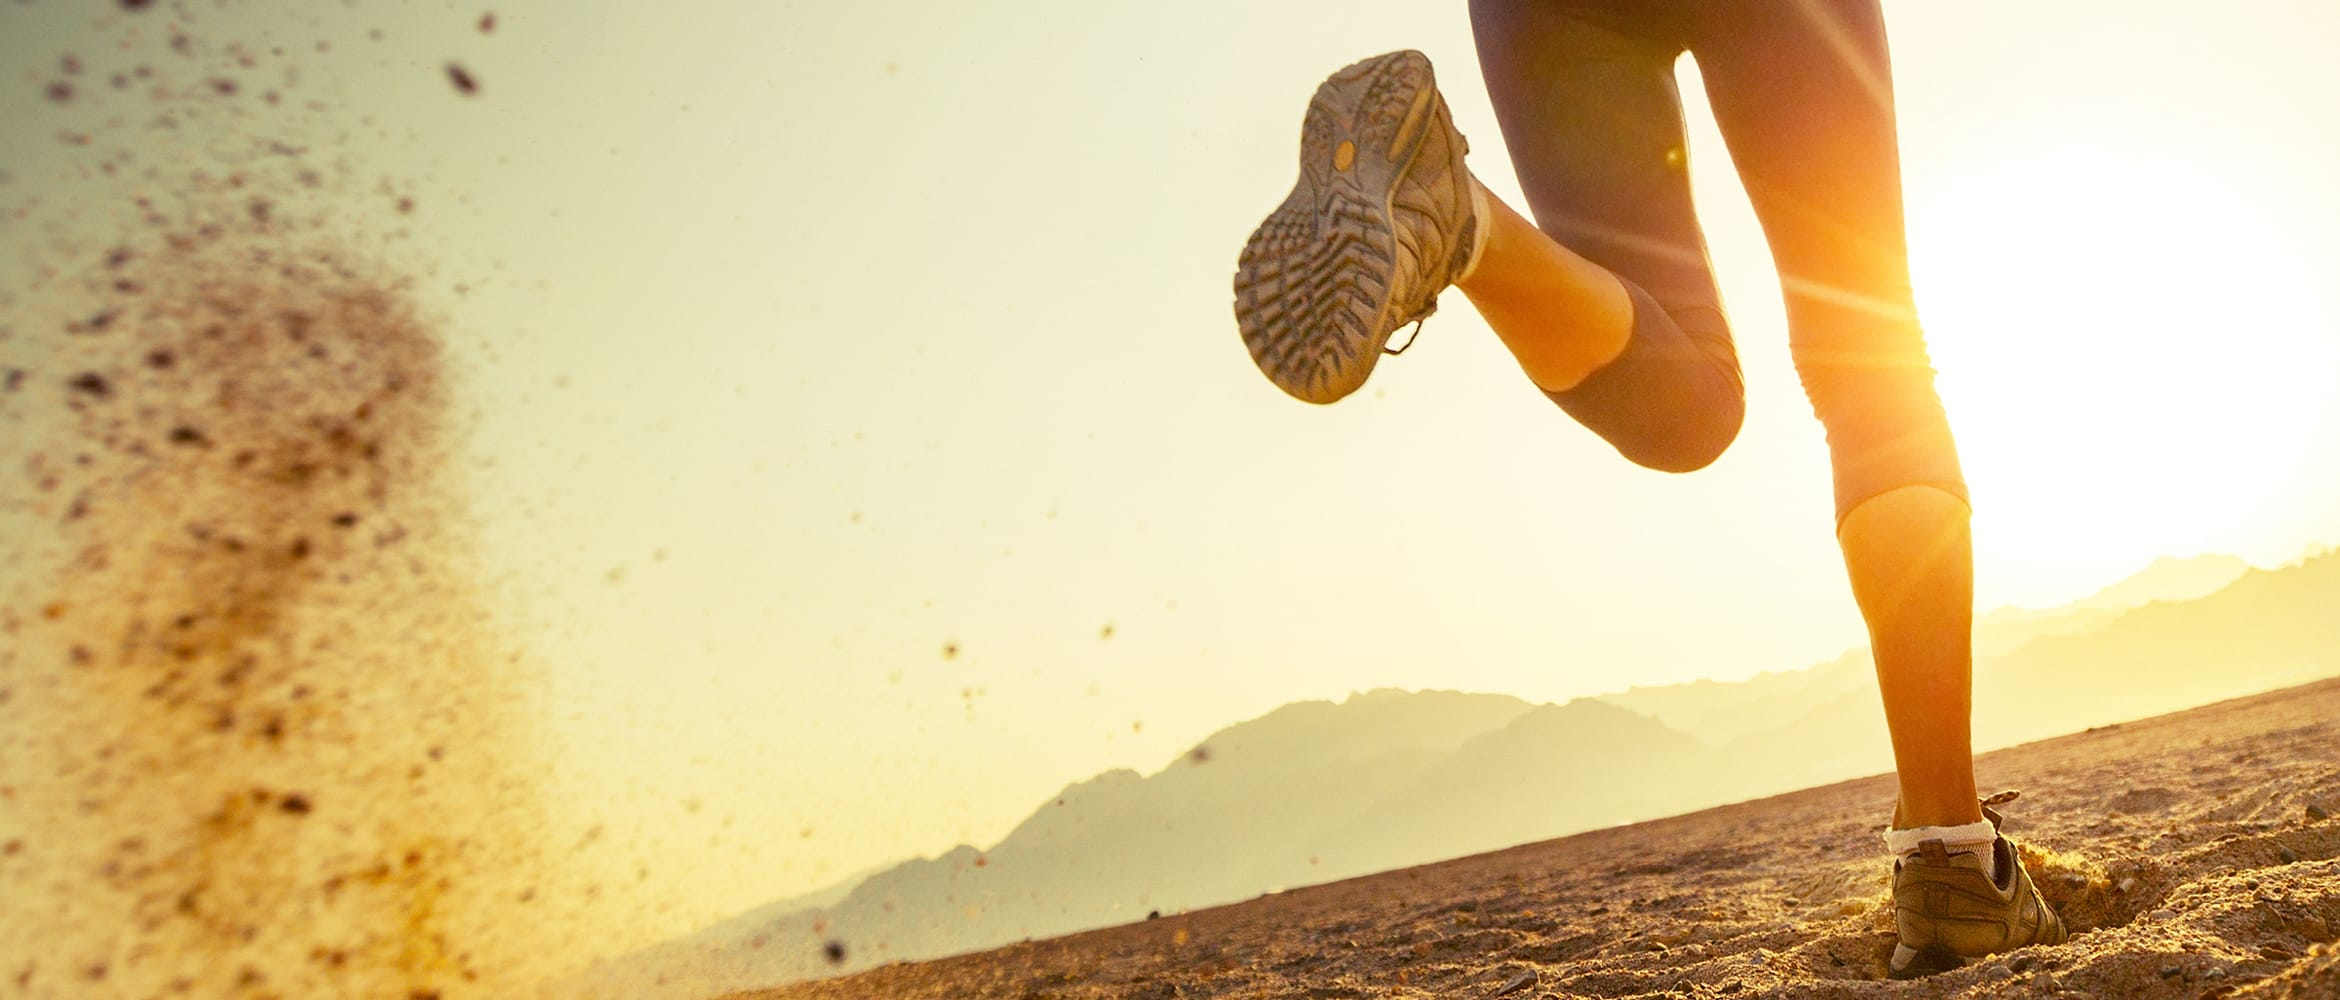 Woman kicks up dirt as she runs towards the sun